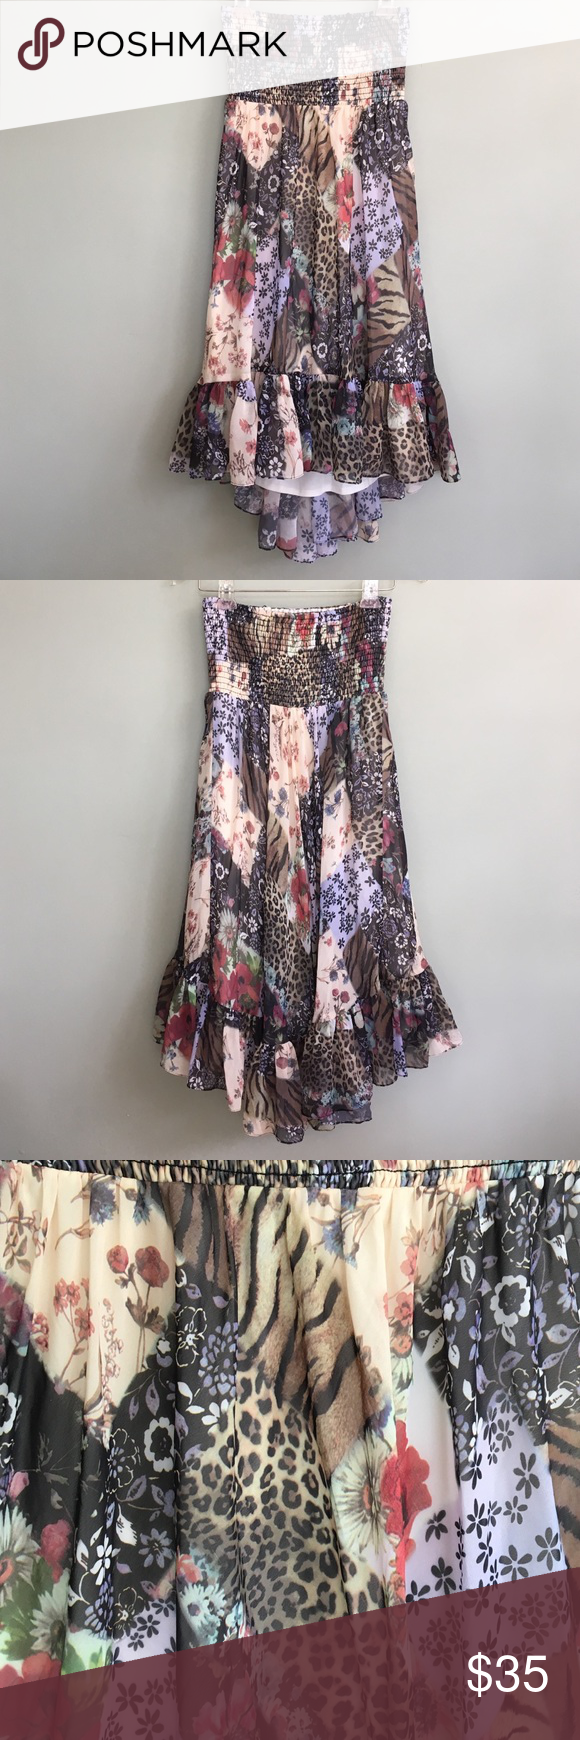 Boston Proper Halter Dress Hippy Hippie Boho Like New